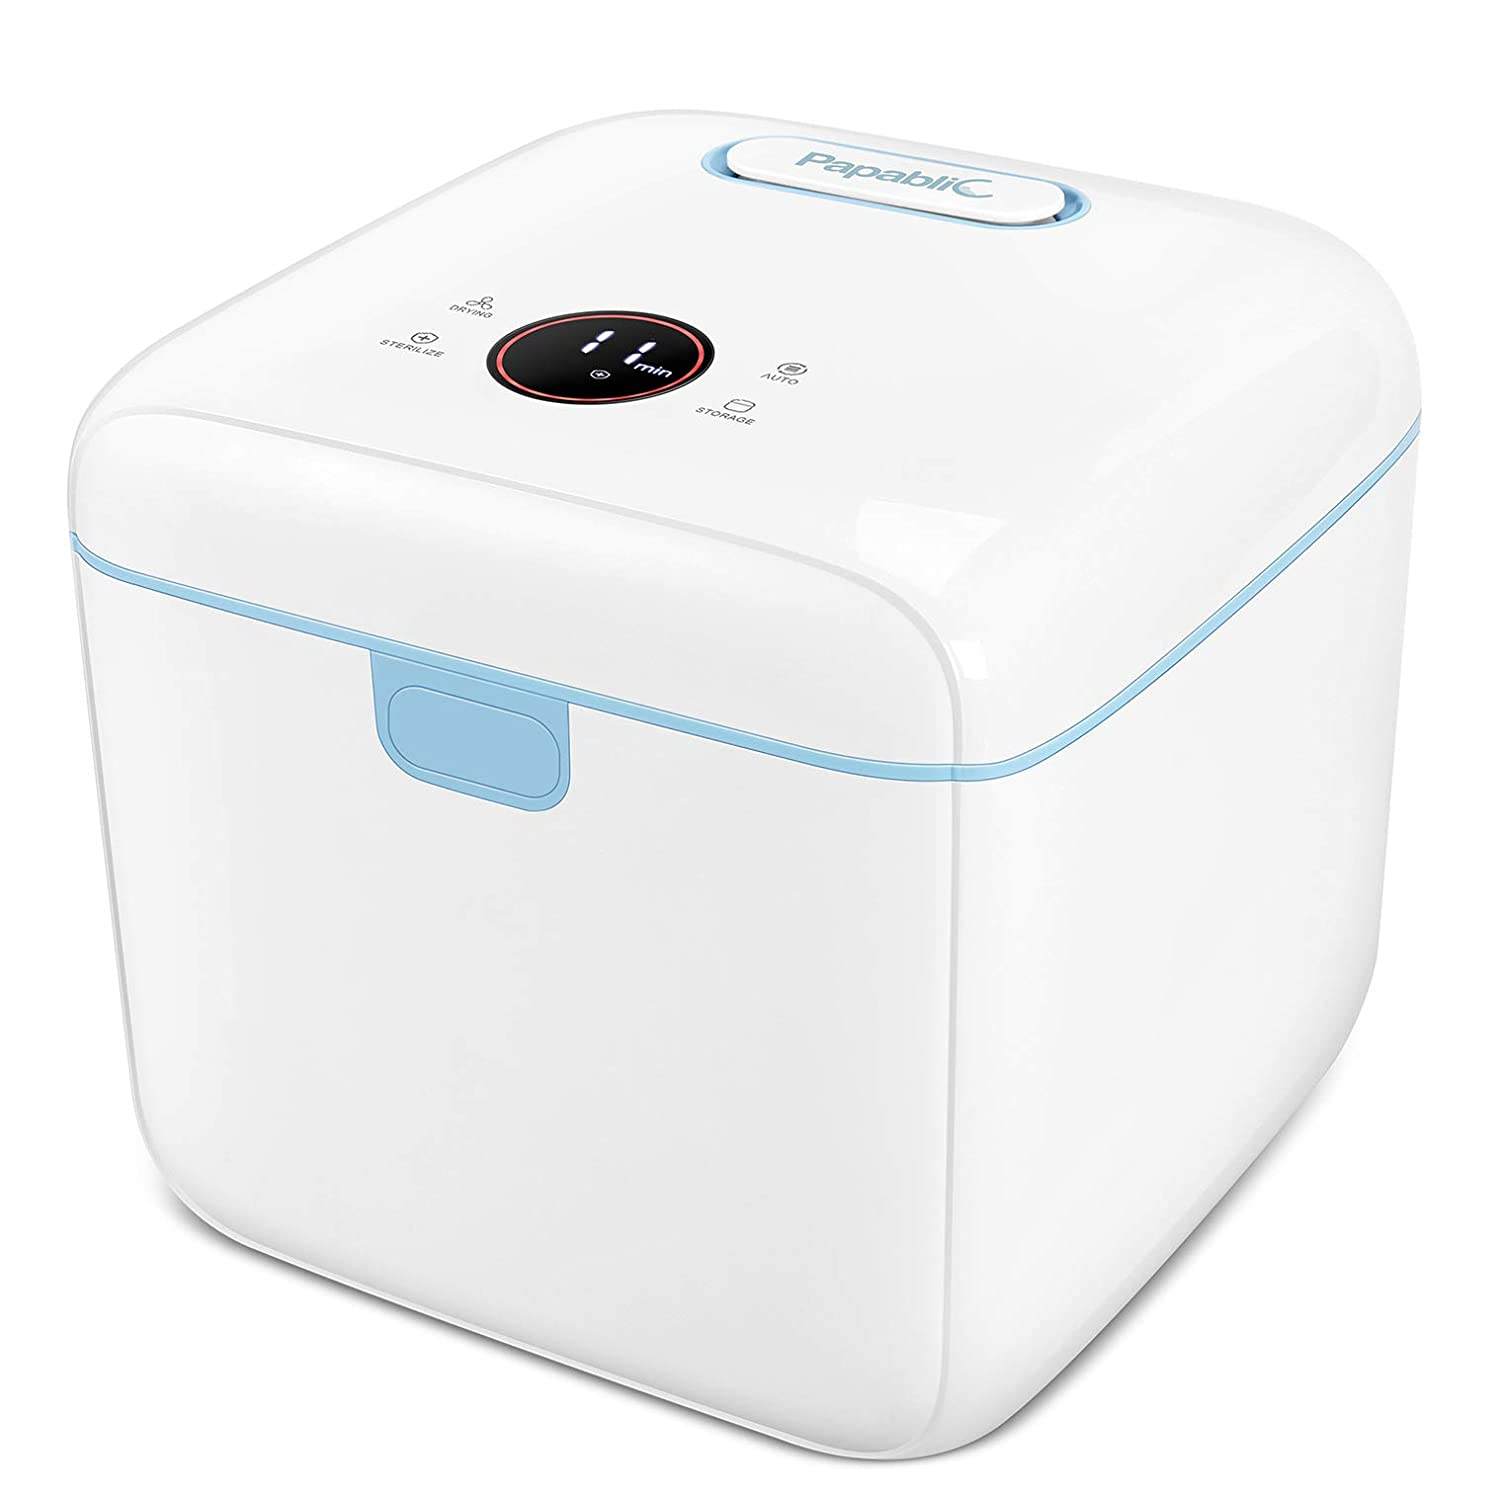 Masks /& PPE Keys Easy Touch Panel Control Sterilizes in Minutes Toys and More Cell Phones No Cleaning Clean and Sanitize Baby Bottles Large UV Sterilizer Box UV-C Light Sanitizer